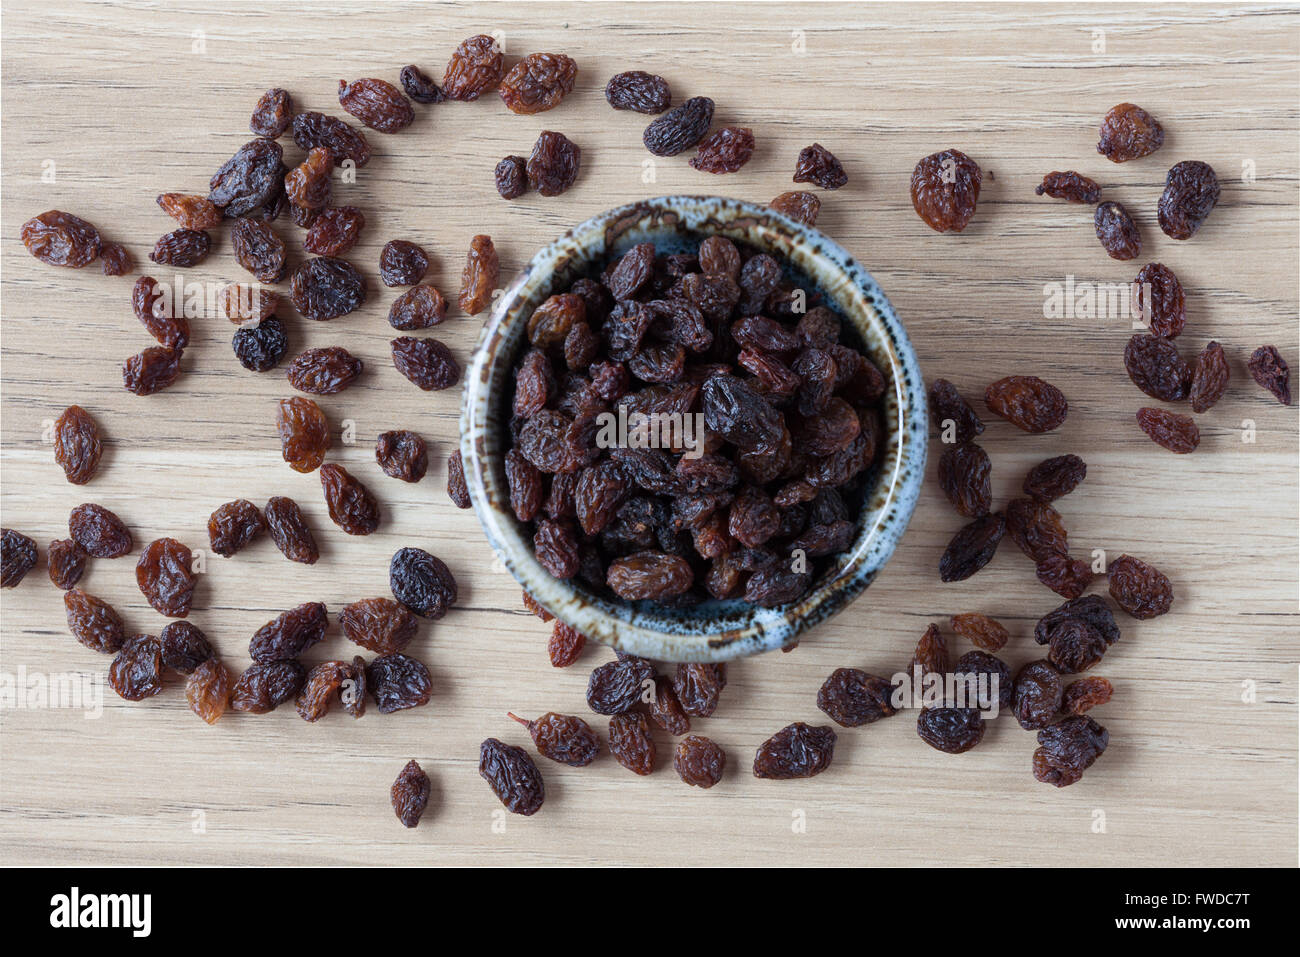 Organic raisins in handmade ceramic bowl on wooden table. Top view. - Stock Image